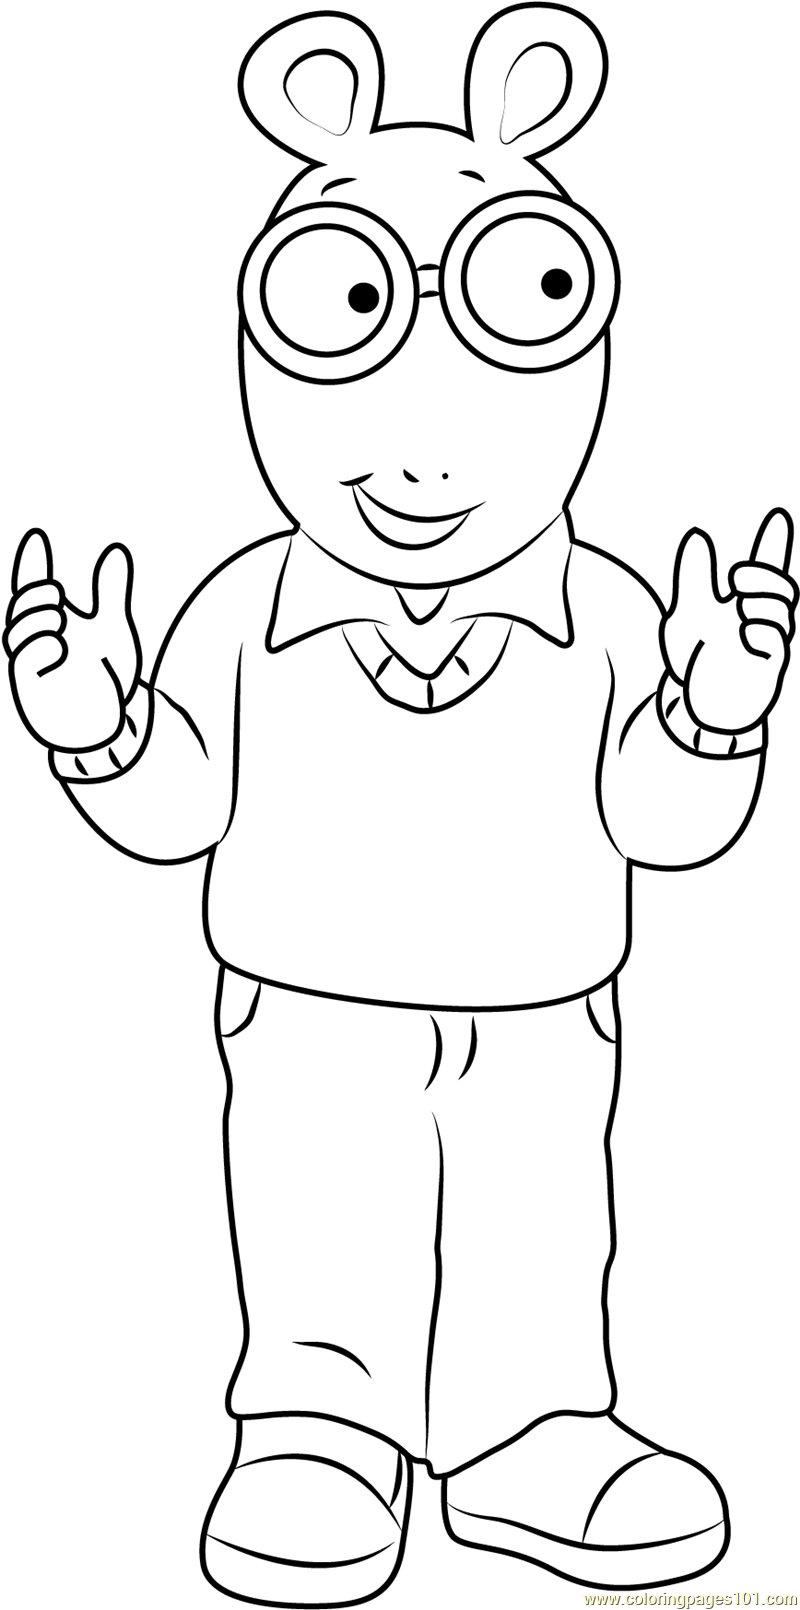 arthur coloring pages free arthur coloring pages inerletboo pages coloring arthur